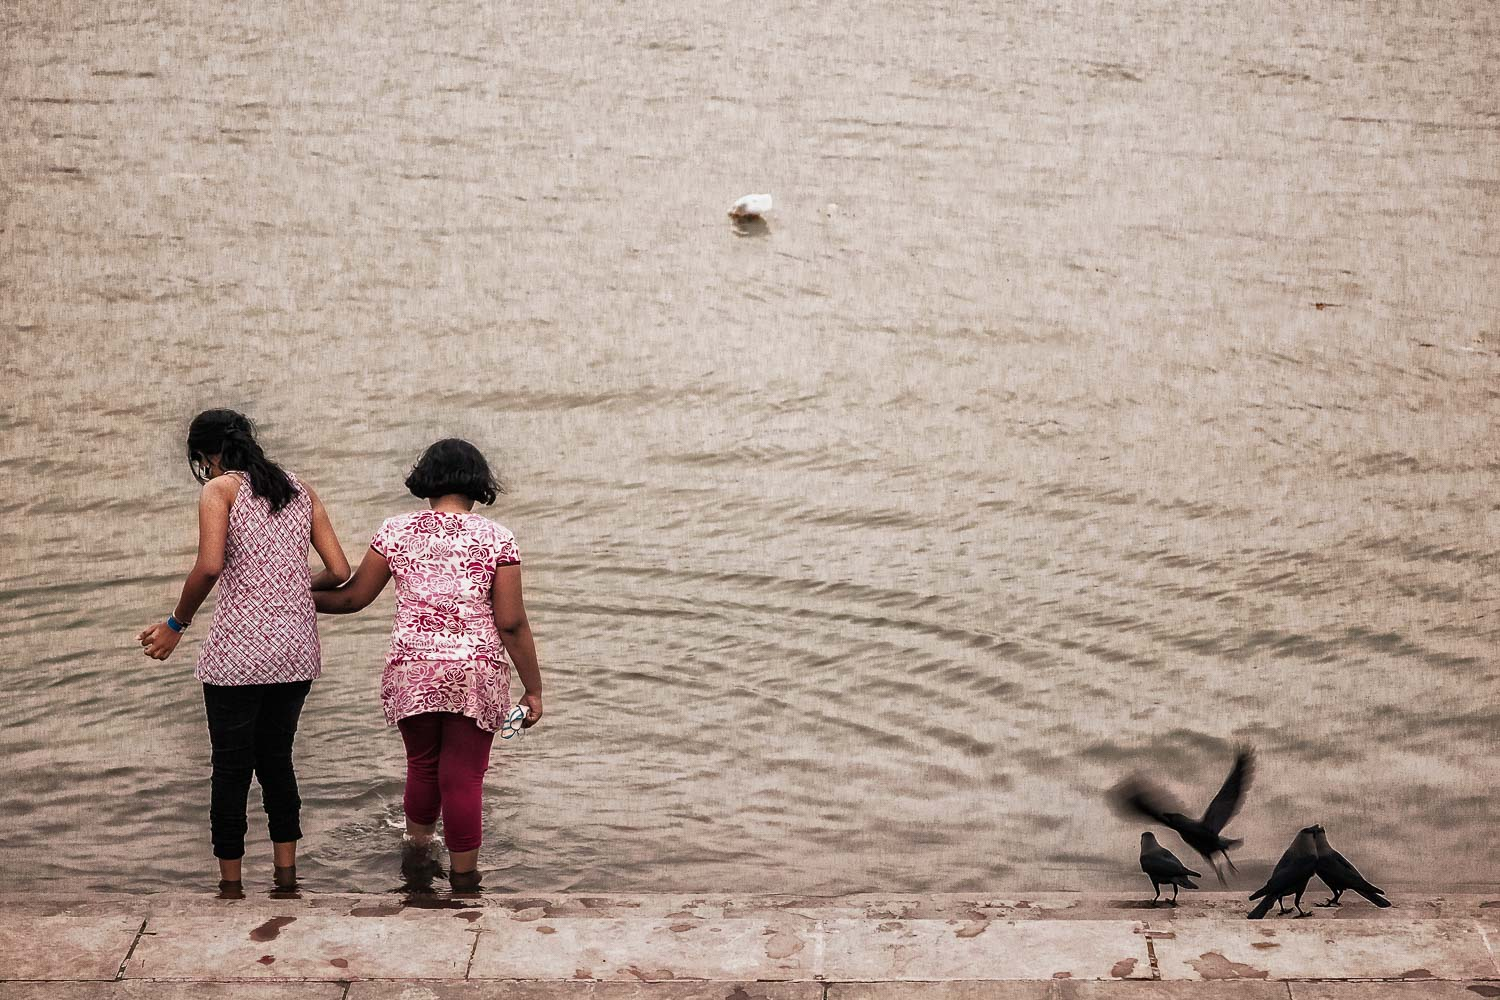 Two girls step gingerly into the waters of the    Hooghly River    in    Kolkata, India   . Version One.